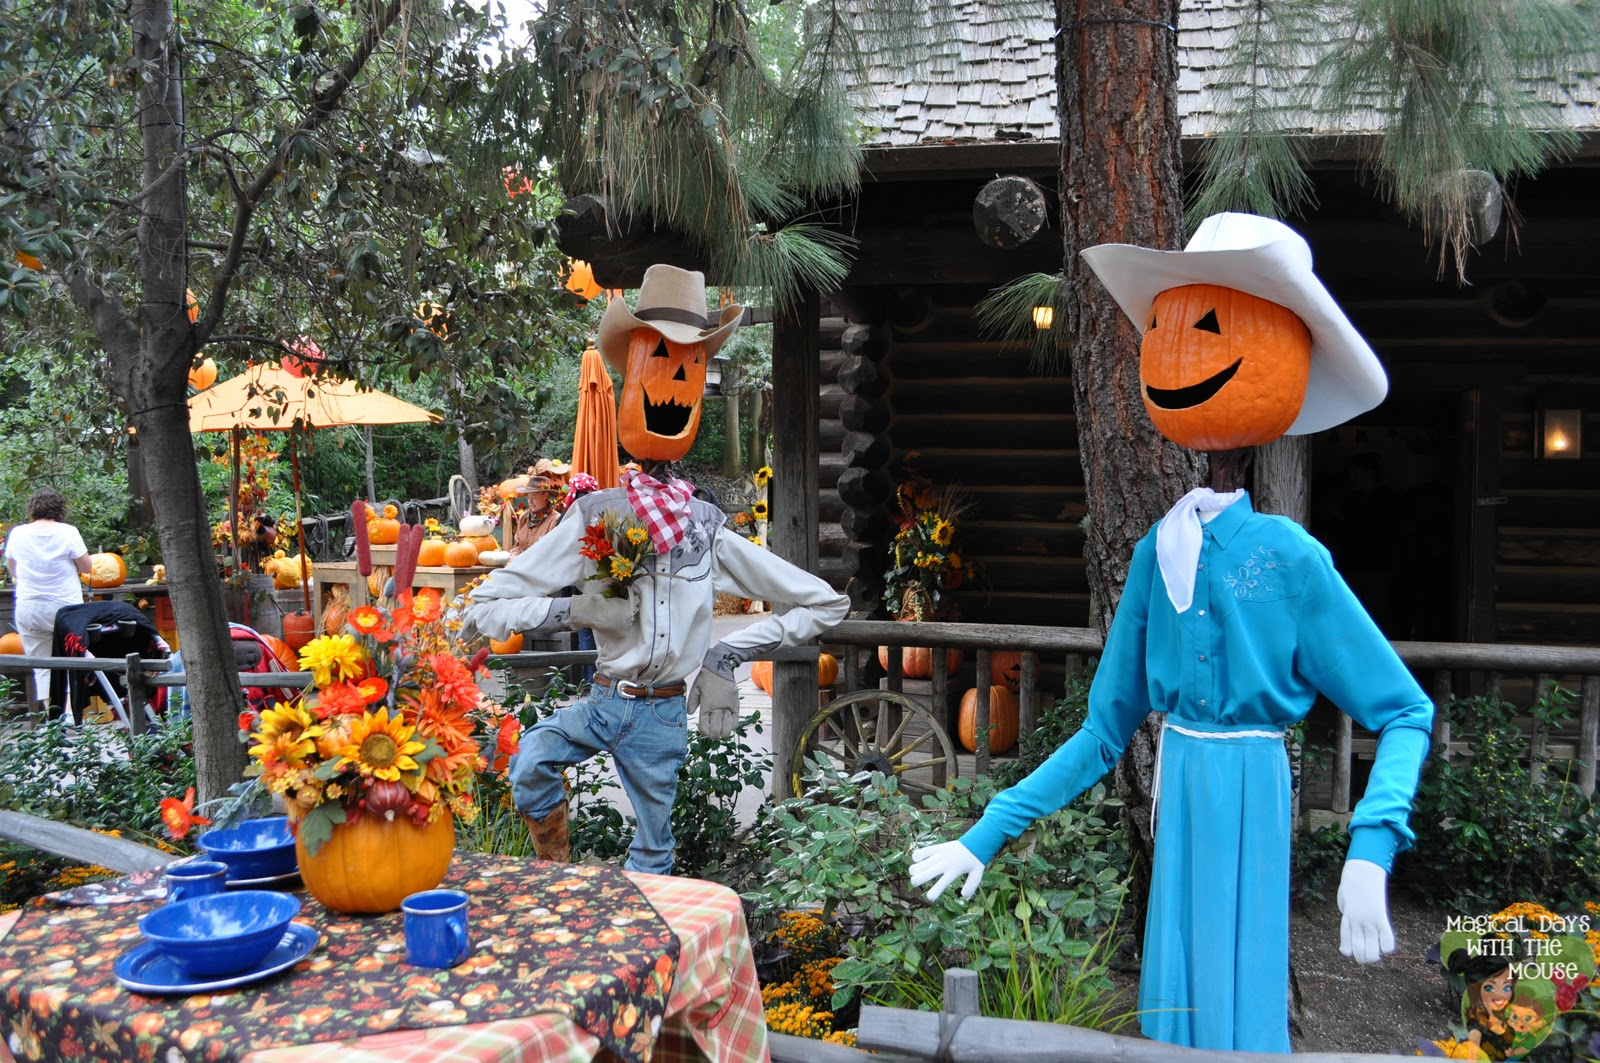 Magical Days with the Mouse: Halloween at Big Thunder Ranch in ... on